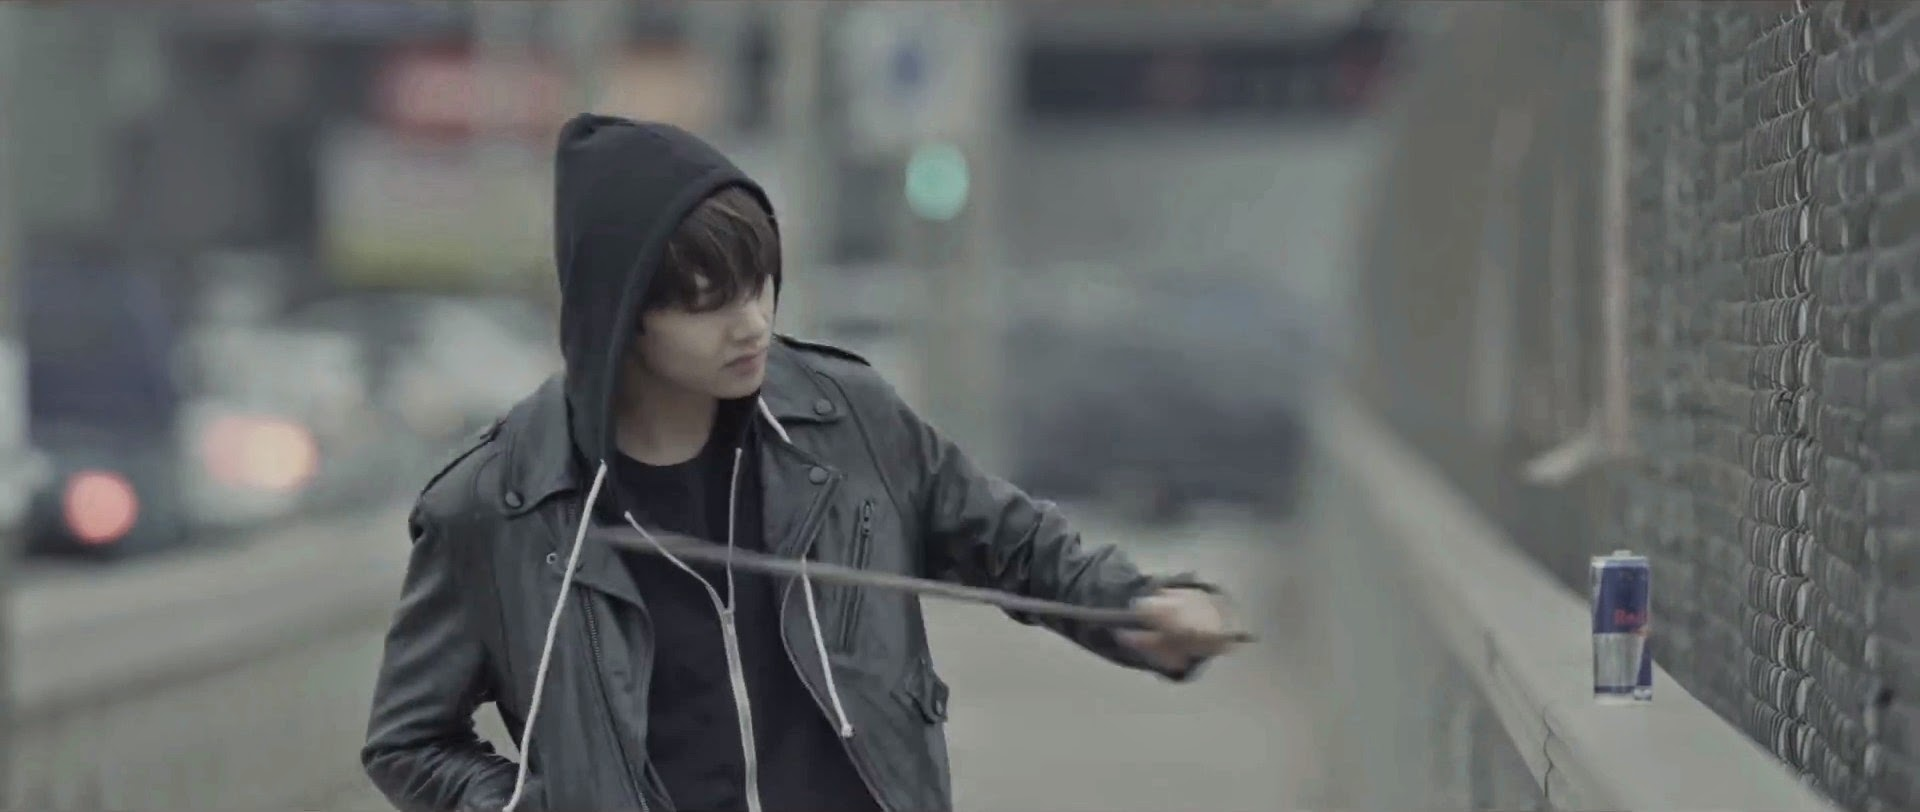 Bangtan's V in I Need You MV